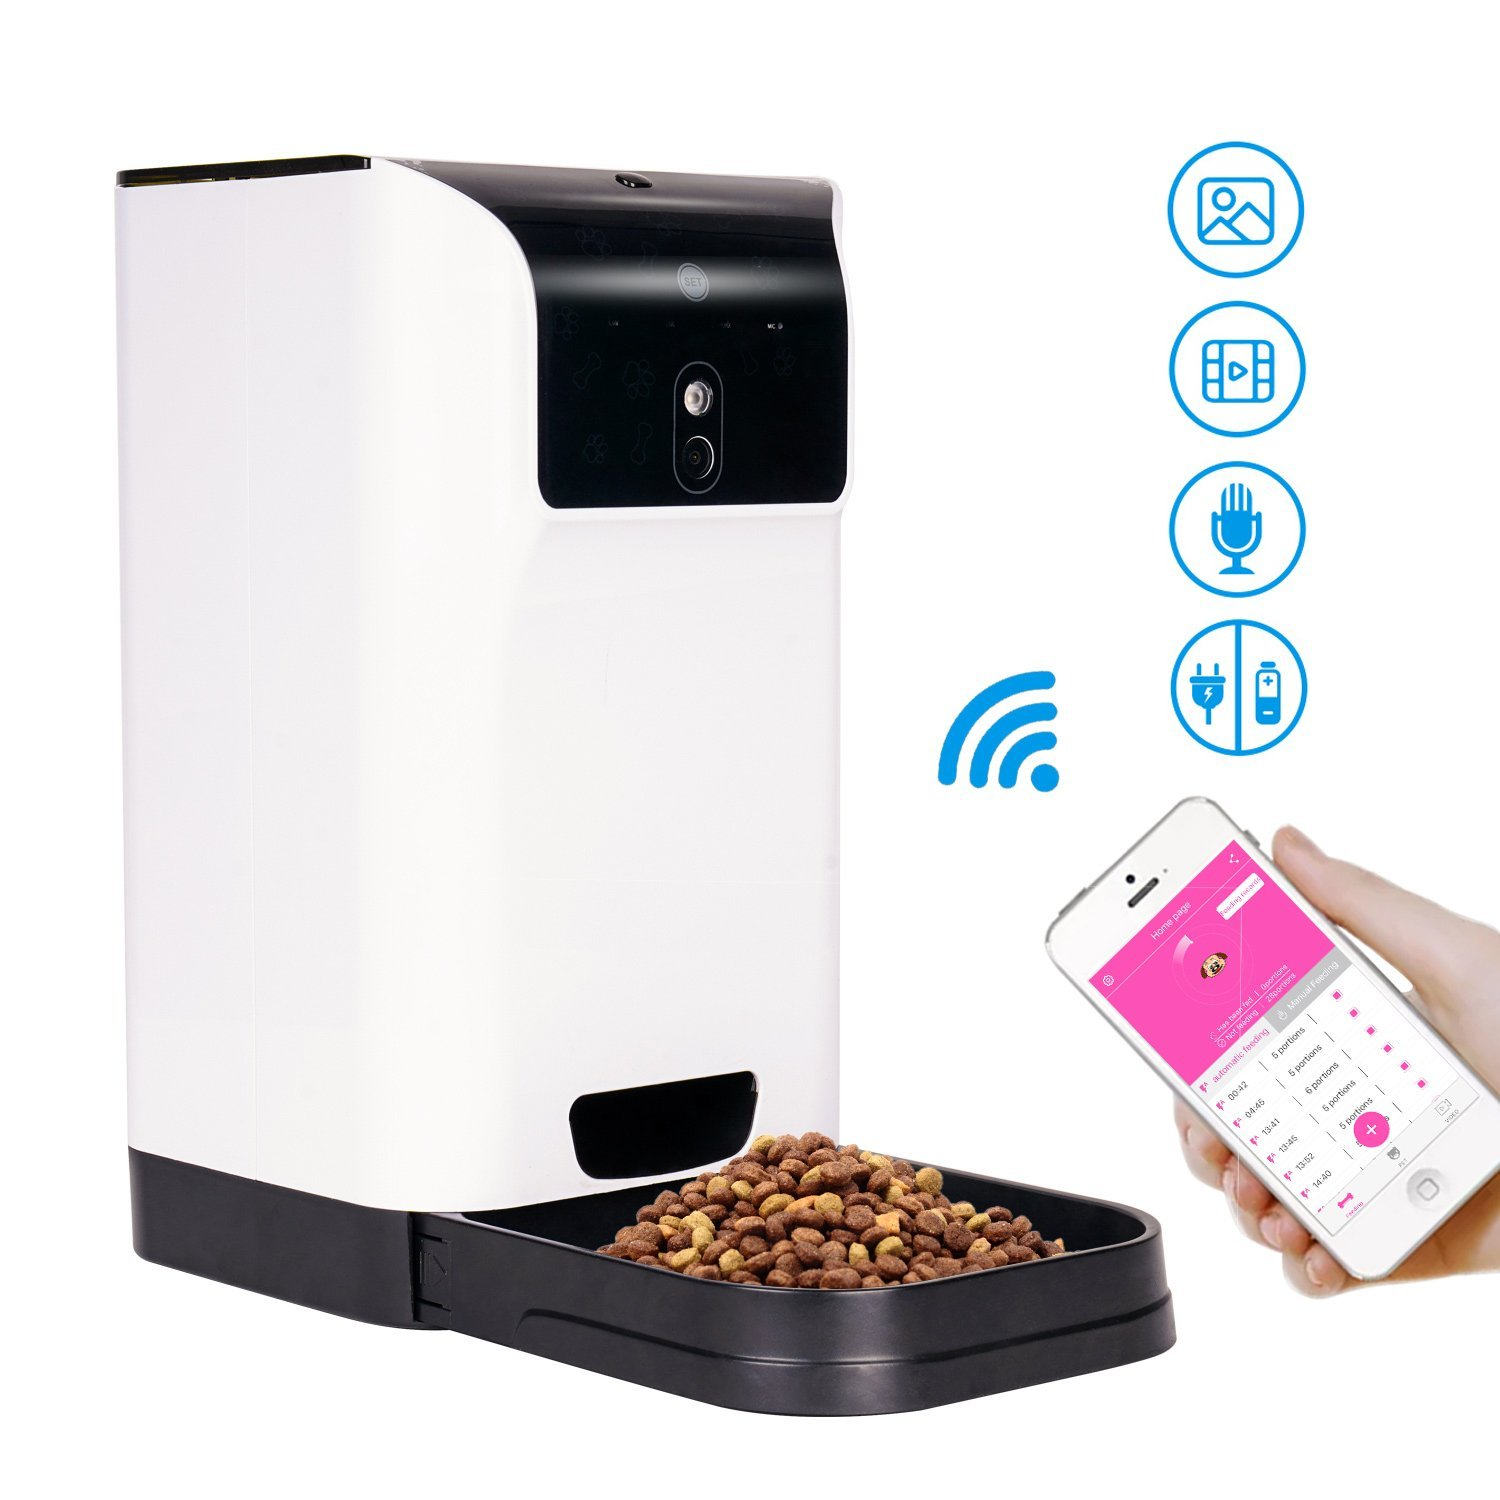 Automatic Cat Feeder Food Dispenser - Tespo Smart pet feeder for Cats&Dogs 6L Capacity Timer Programmable,control by APP,HD Camera Video Recording